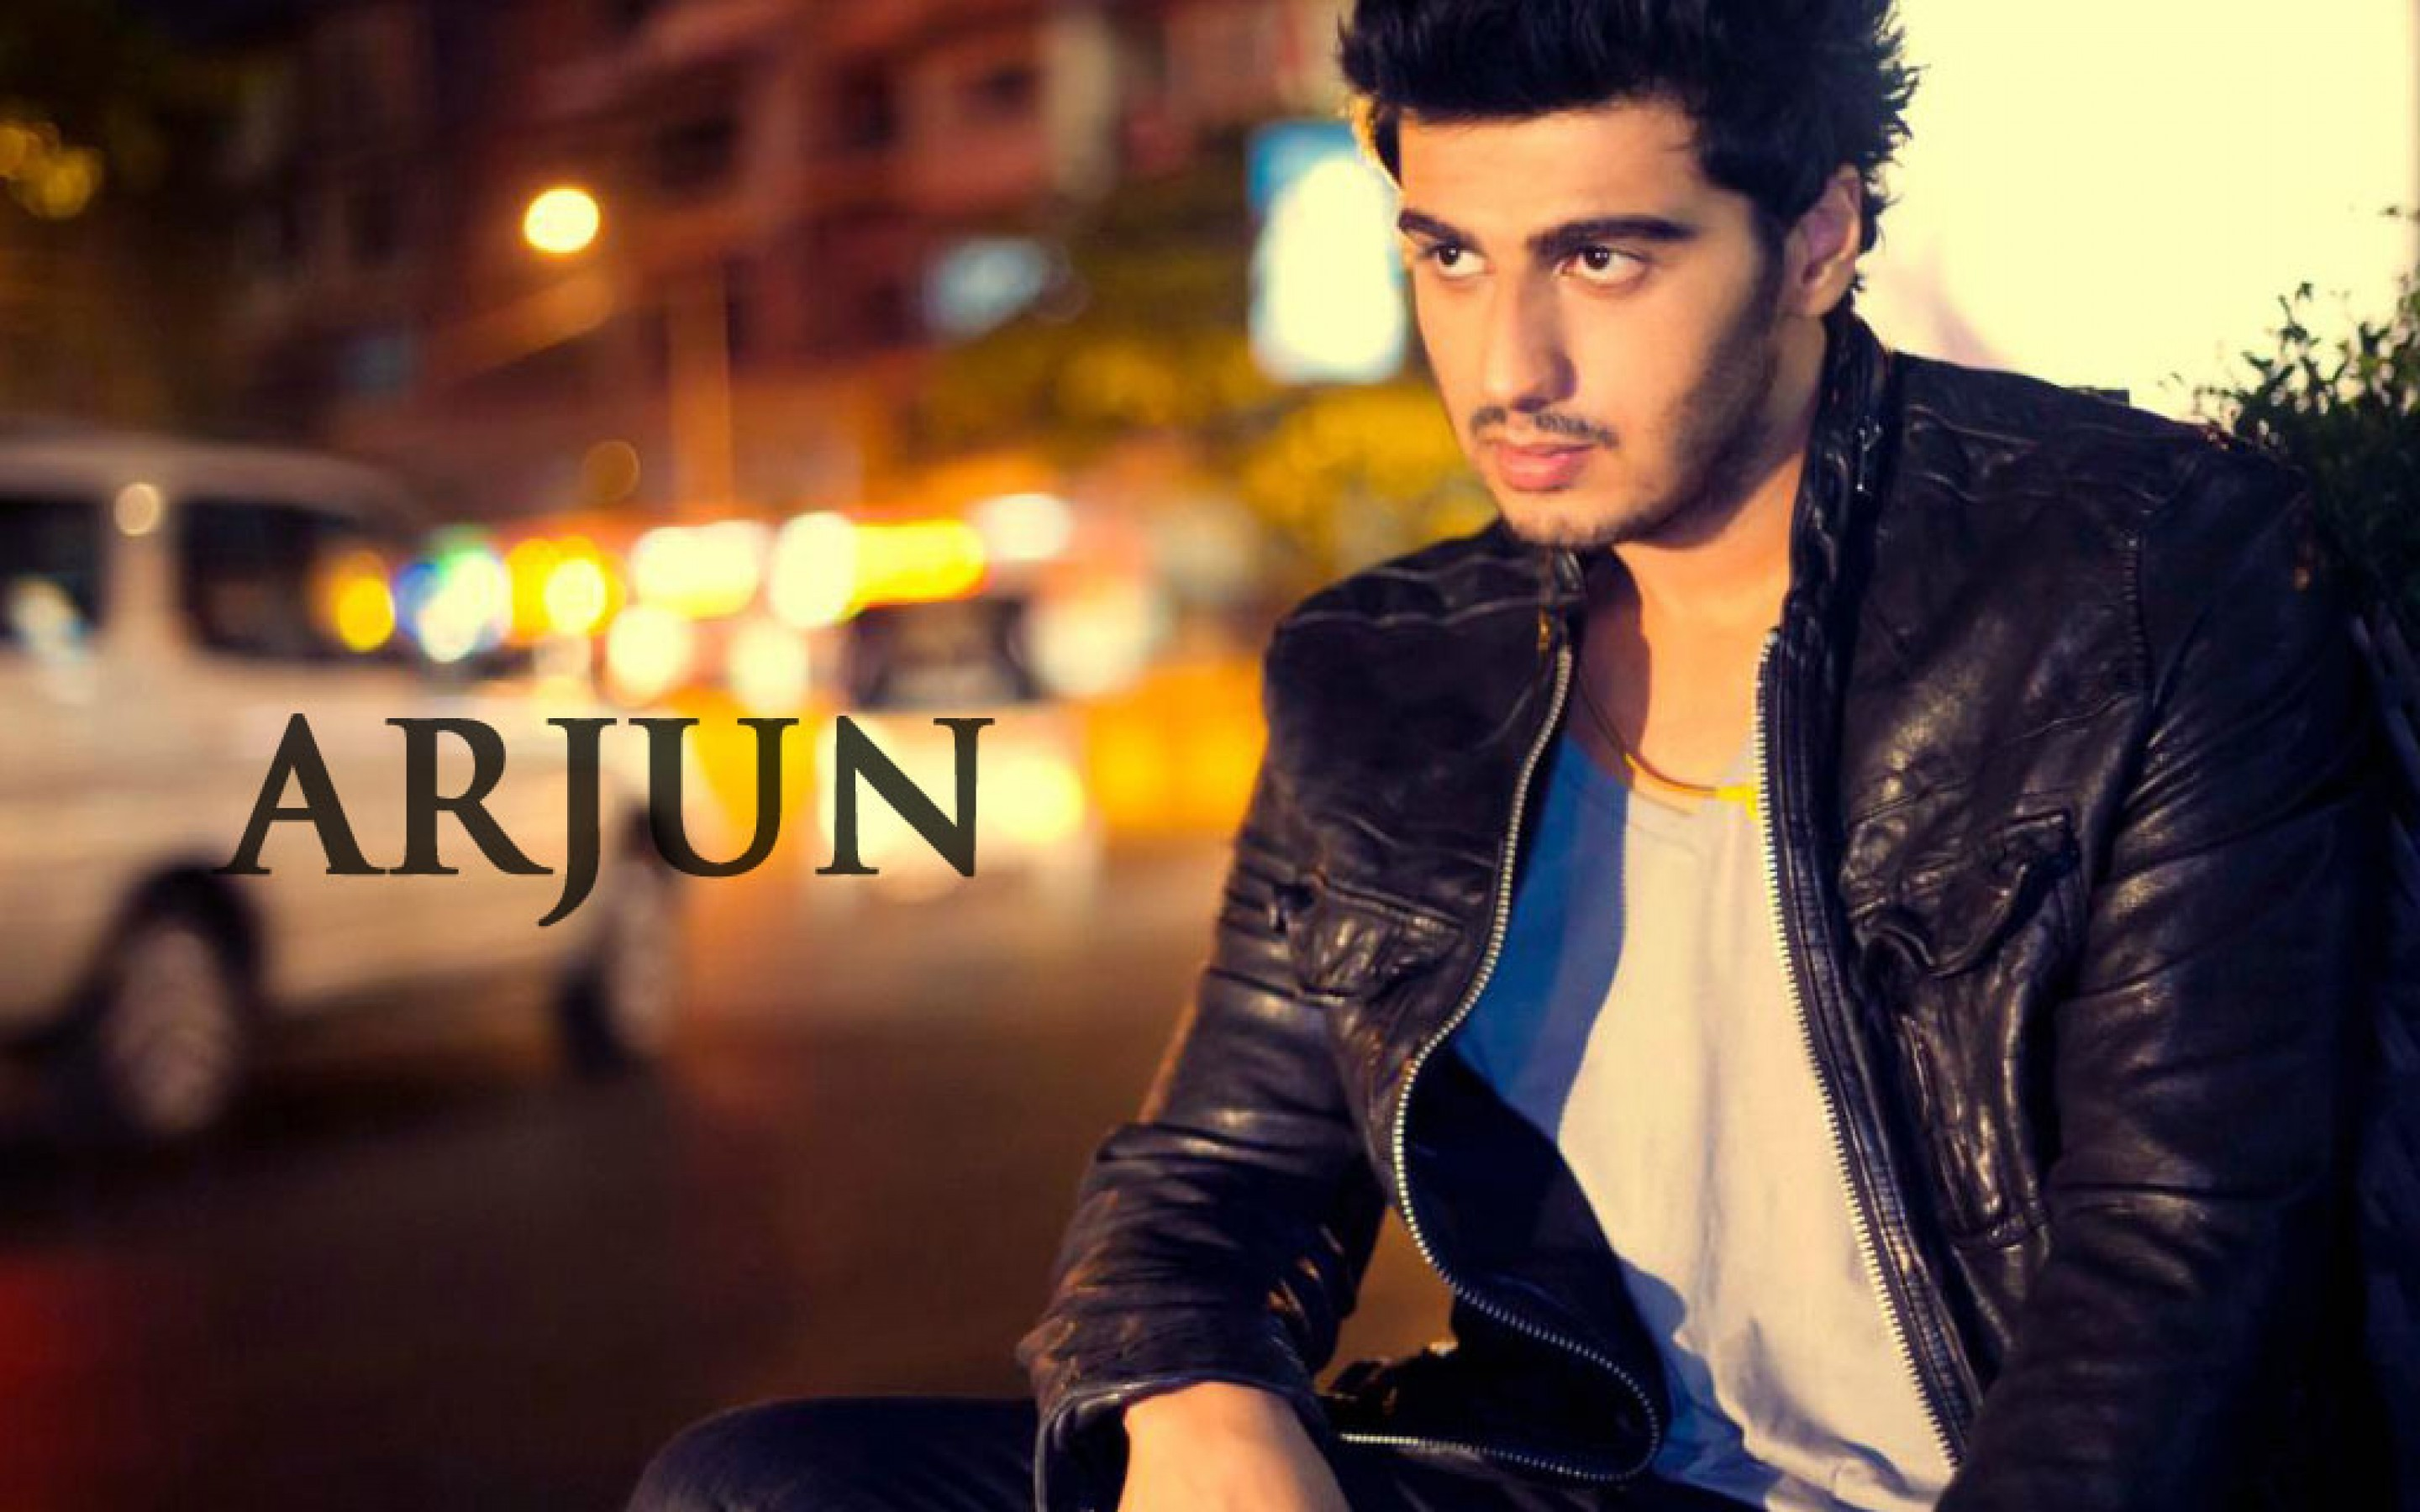 Images of Arjun Kapoor